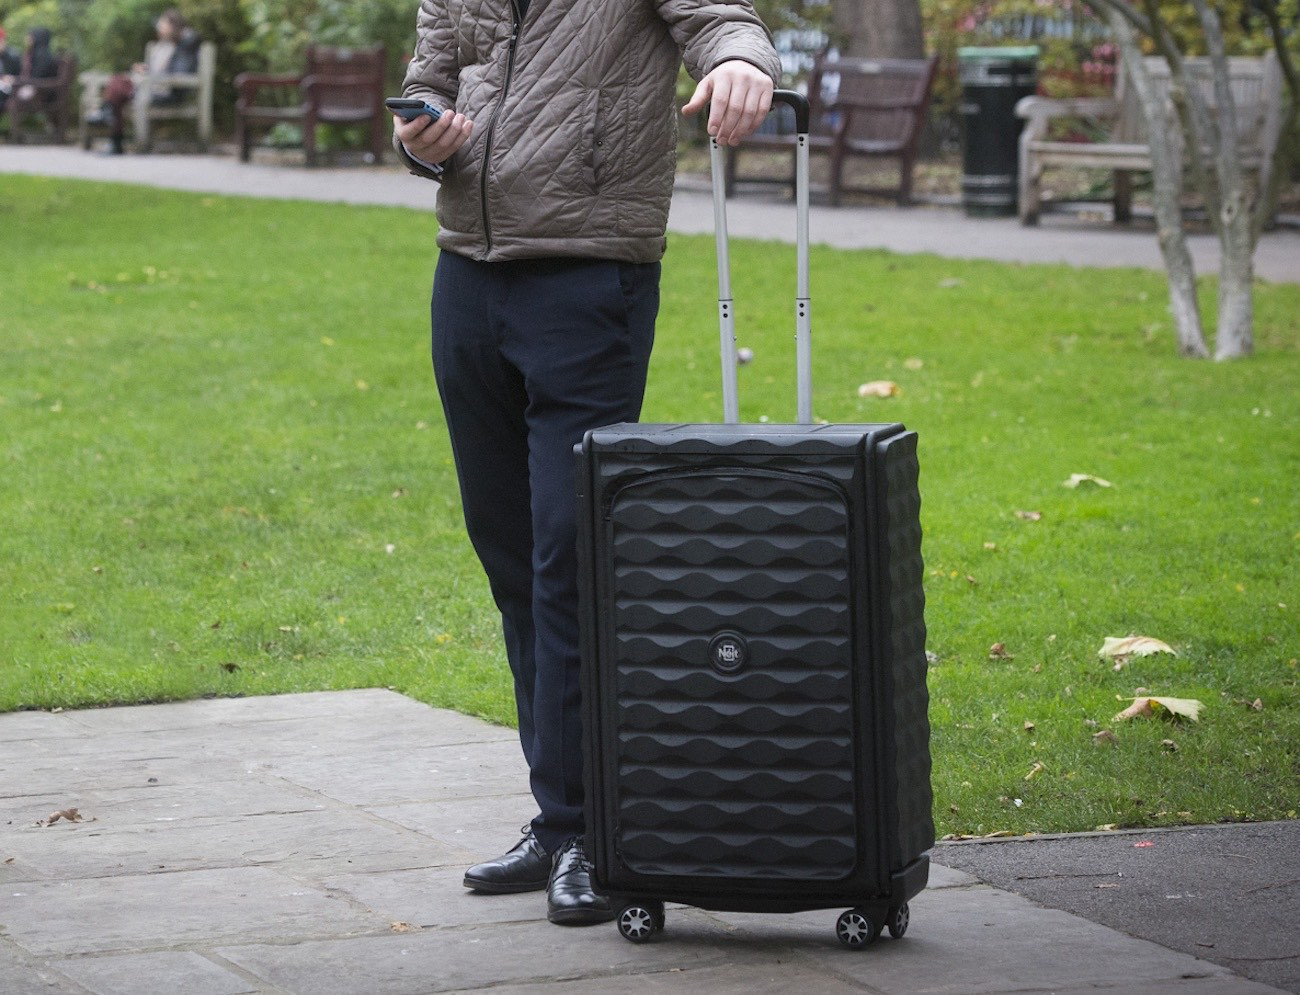 Néit Luggage – Revolutionary Smart, Collapsible Hard Case Luggage